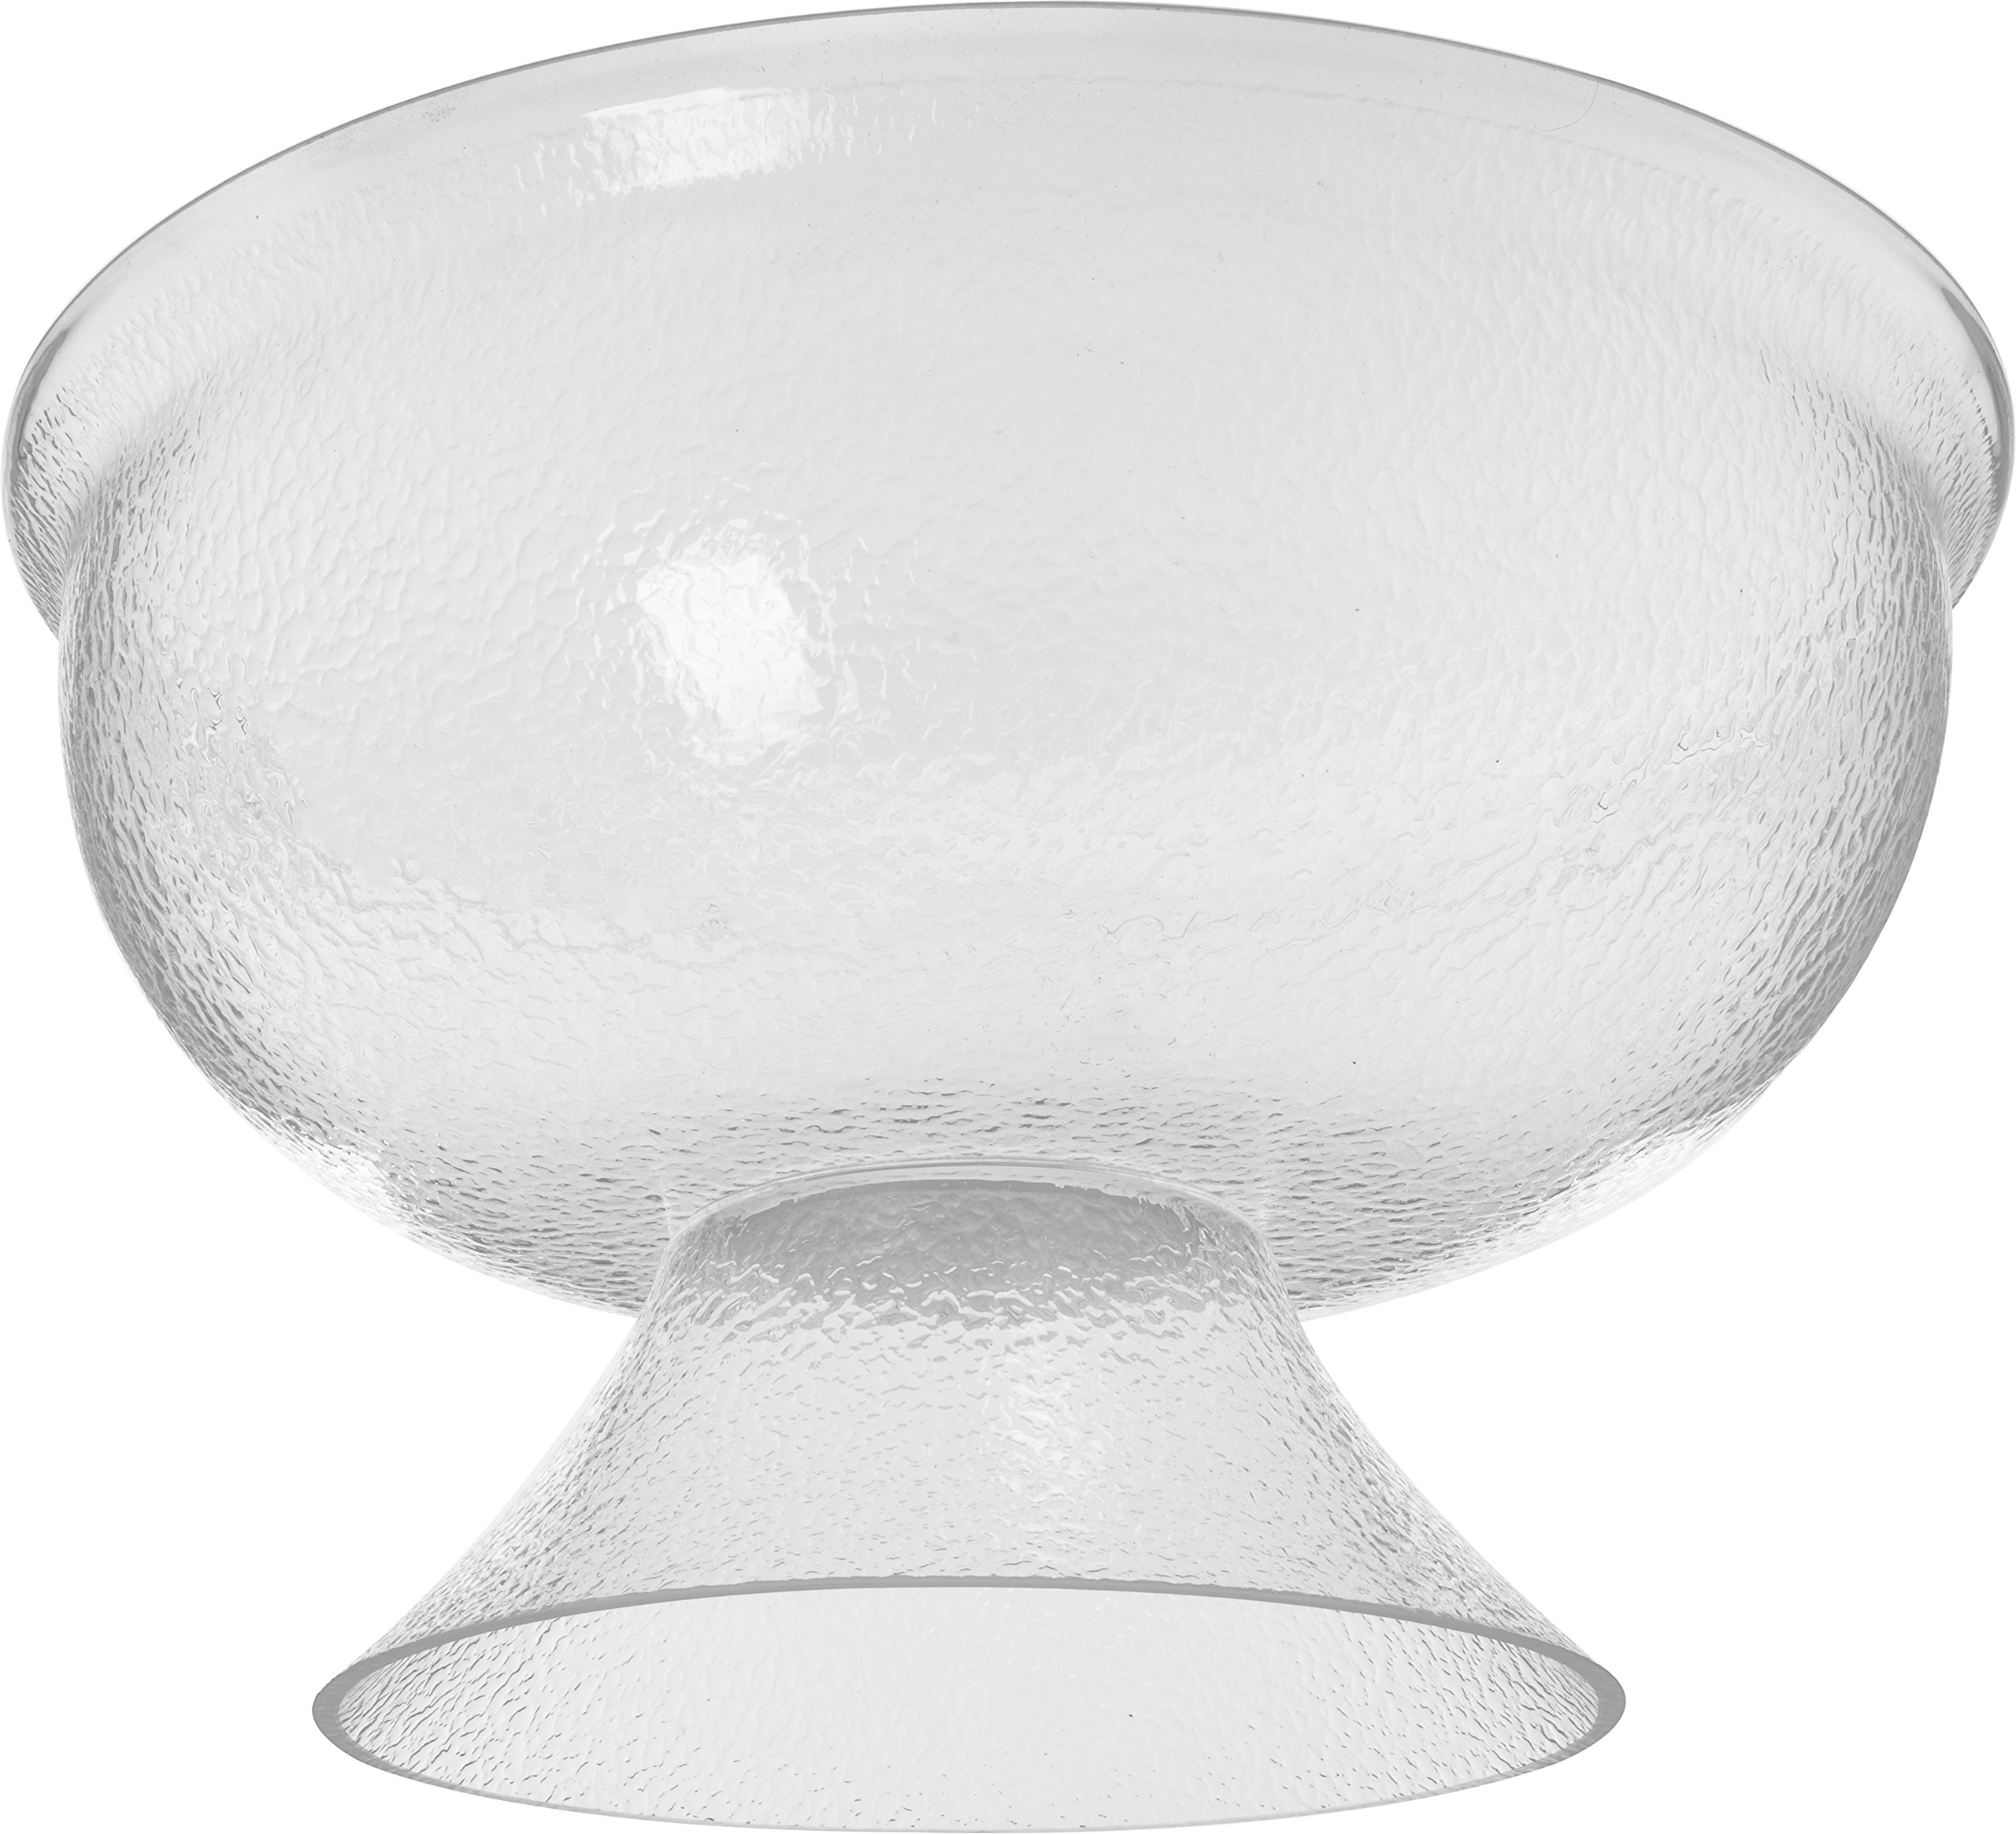 Carlisle SP1807 Acrylic Pebbled Punch Bowl, 16-qt. Capacity, 17.75'' Diameter x 10.63'' Overall Height x 6.5'' Depth, Clear by Carlisle (Image #5)